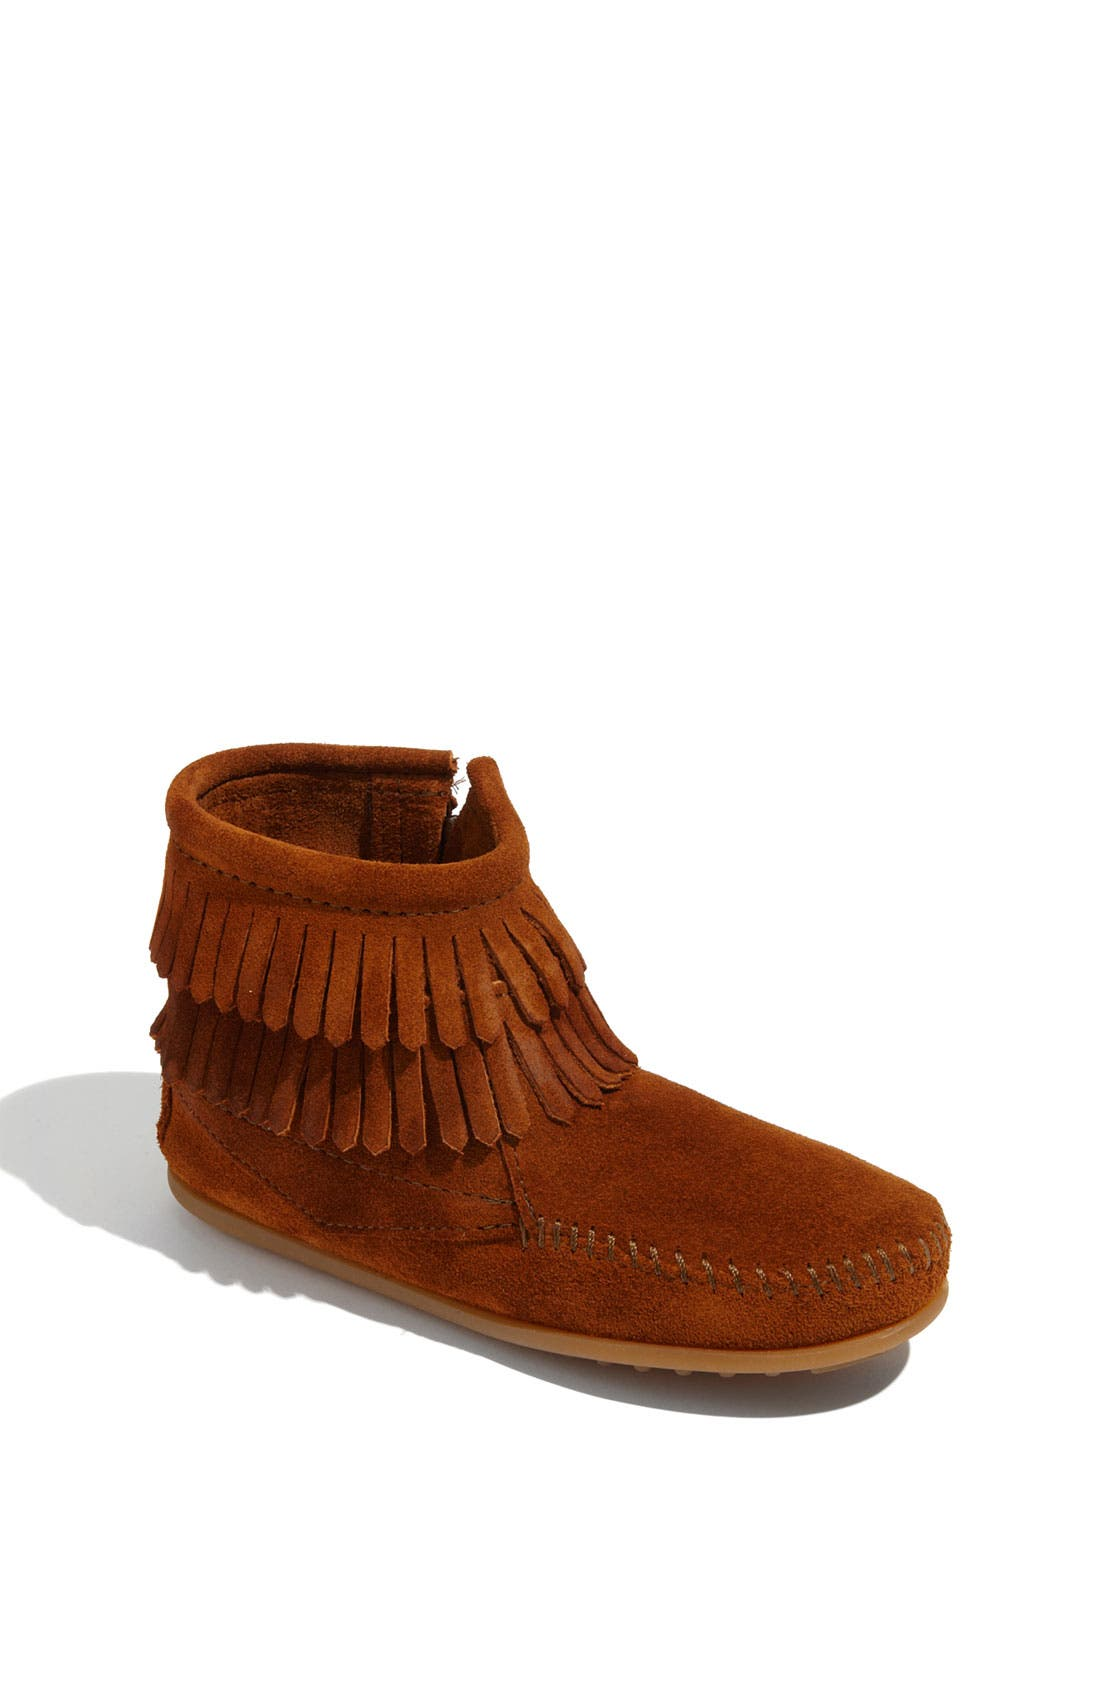 Main Image - Minnetonka 'Double Fringe' Boot (Walker, Toddler, Little Kid & Big Kid)